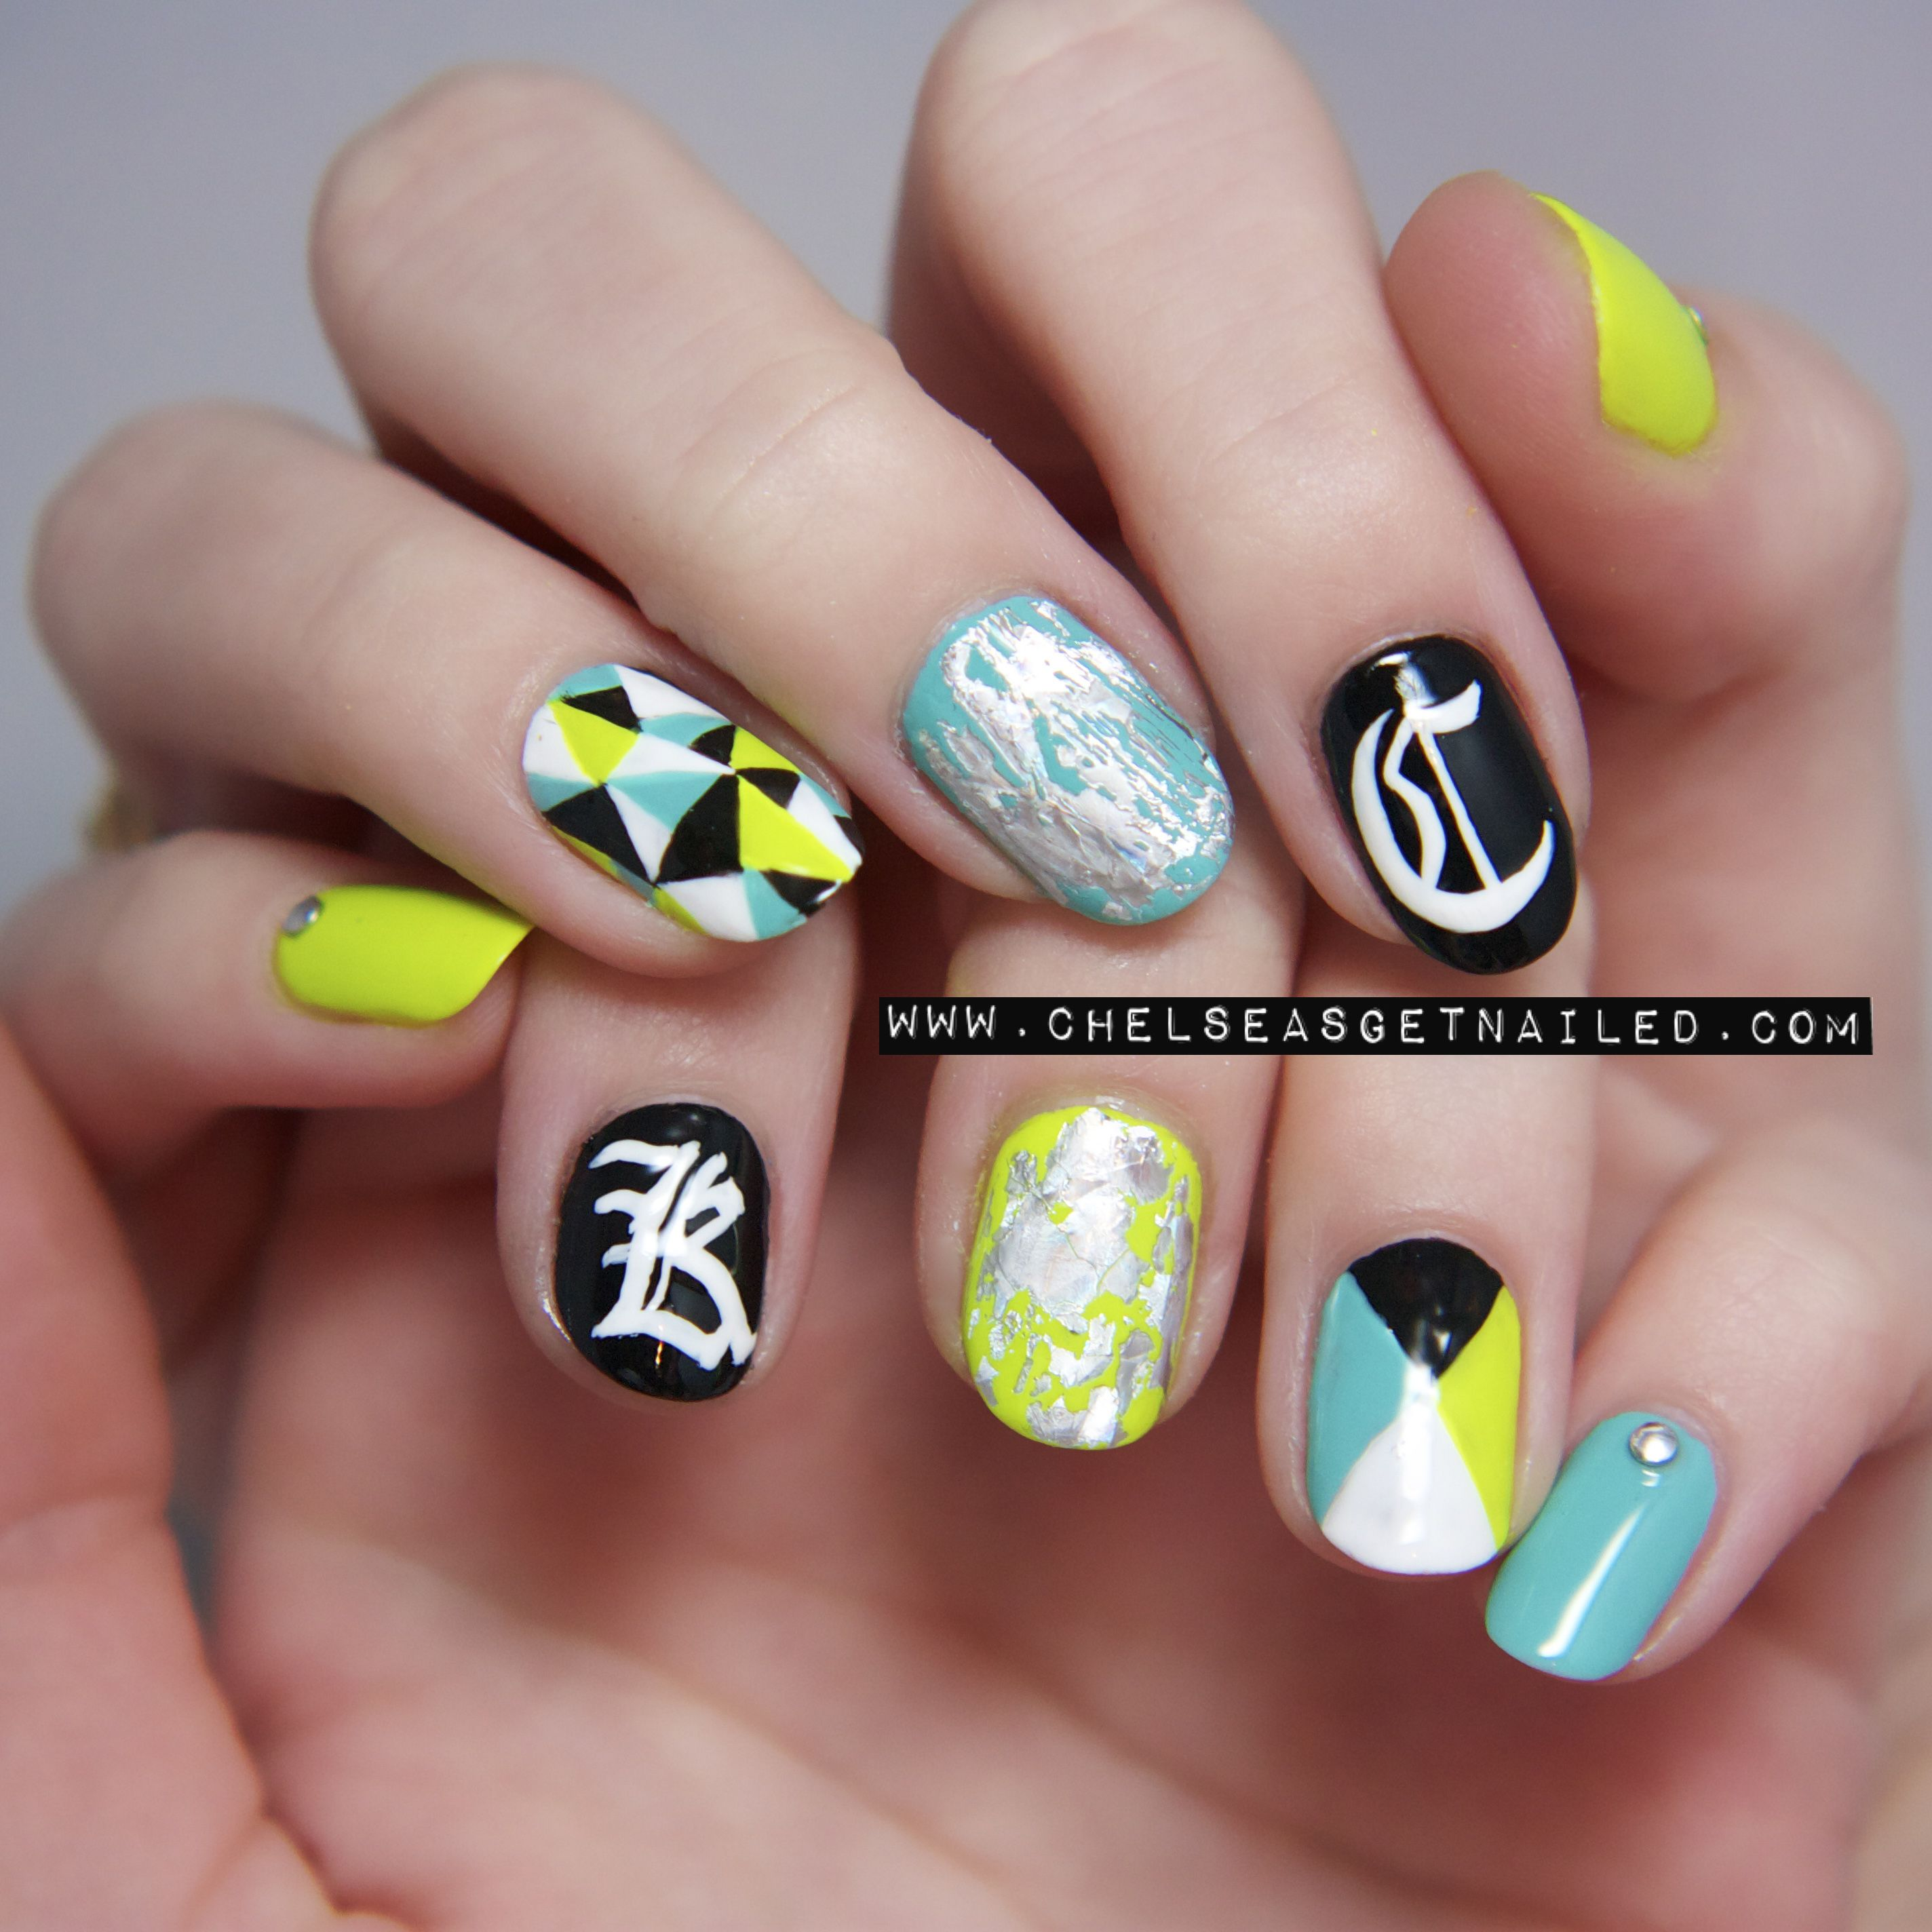 Graphic patterns with initials. Love the color combination too.